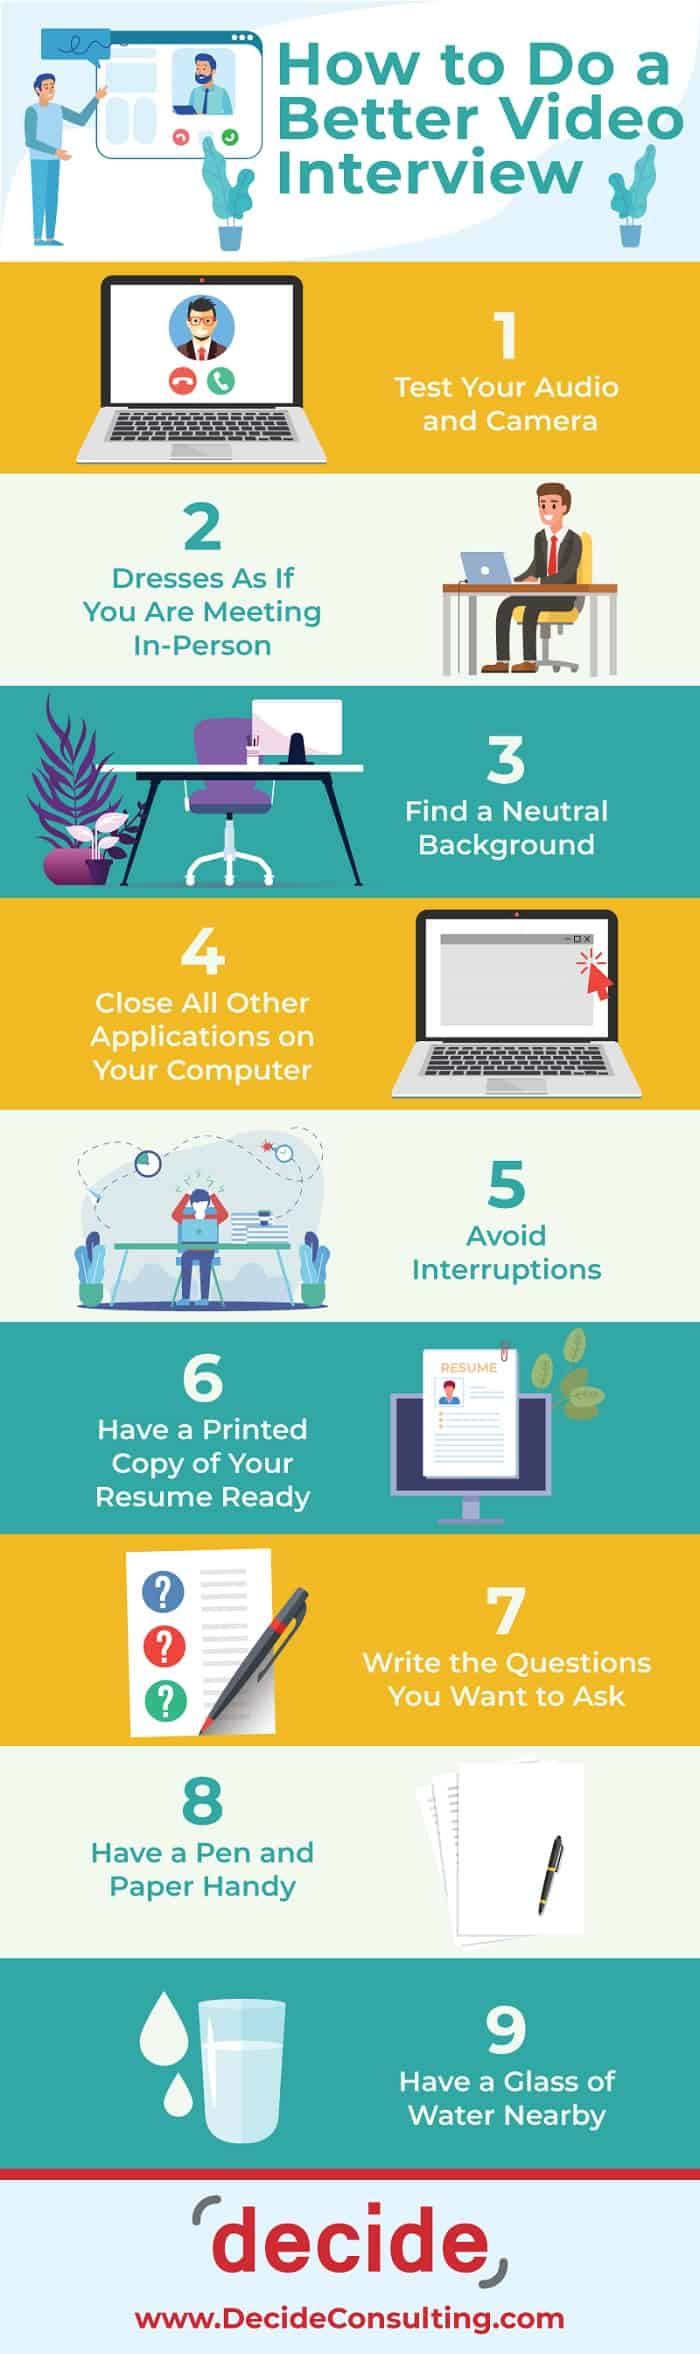 infographic - How to Do a Better Video Interview